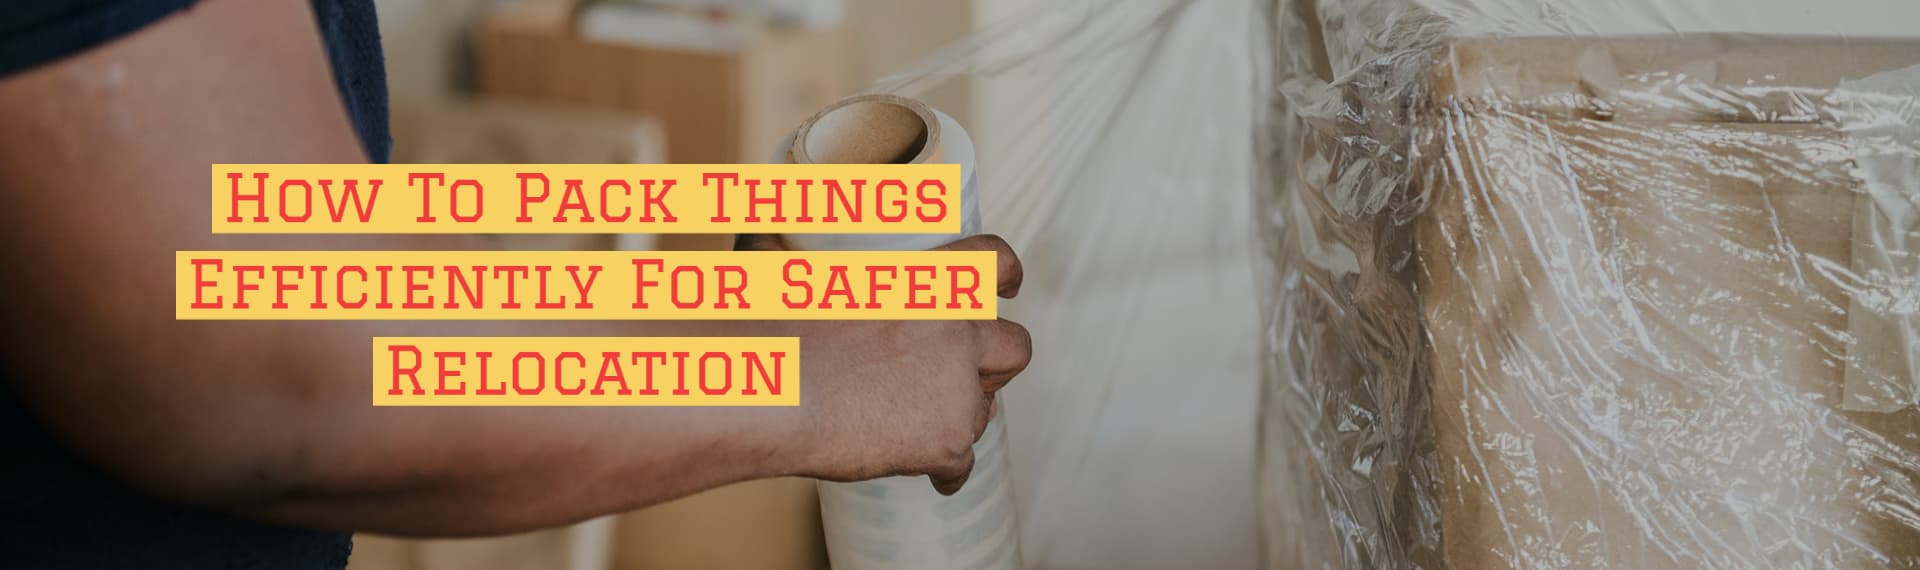 How To Pack Things Efficiently For Safer Relocation